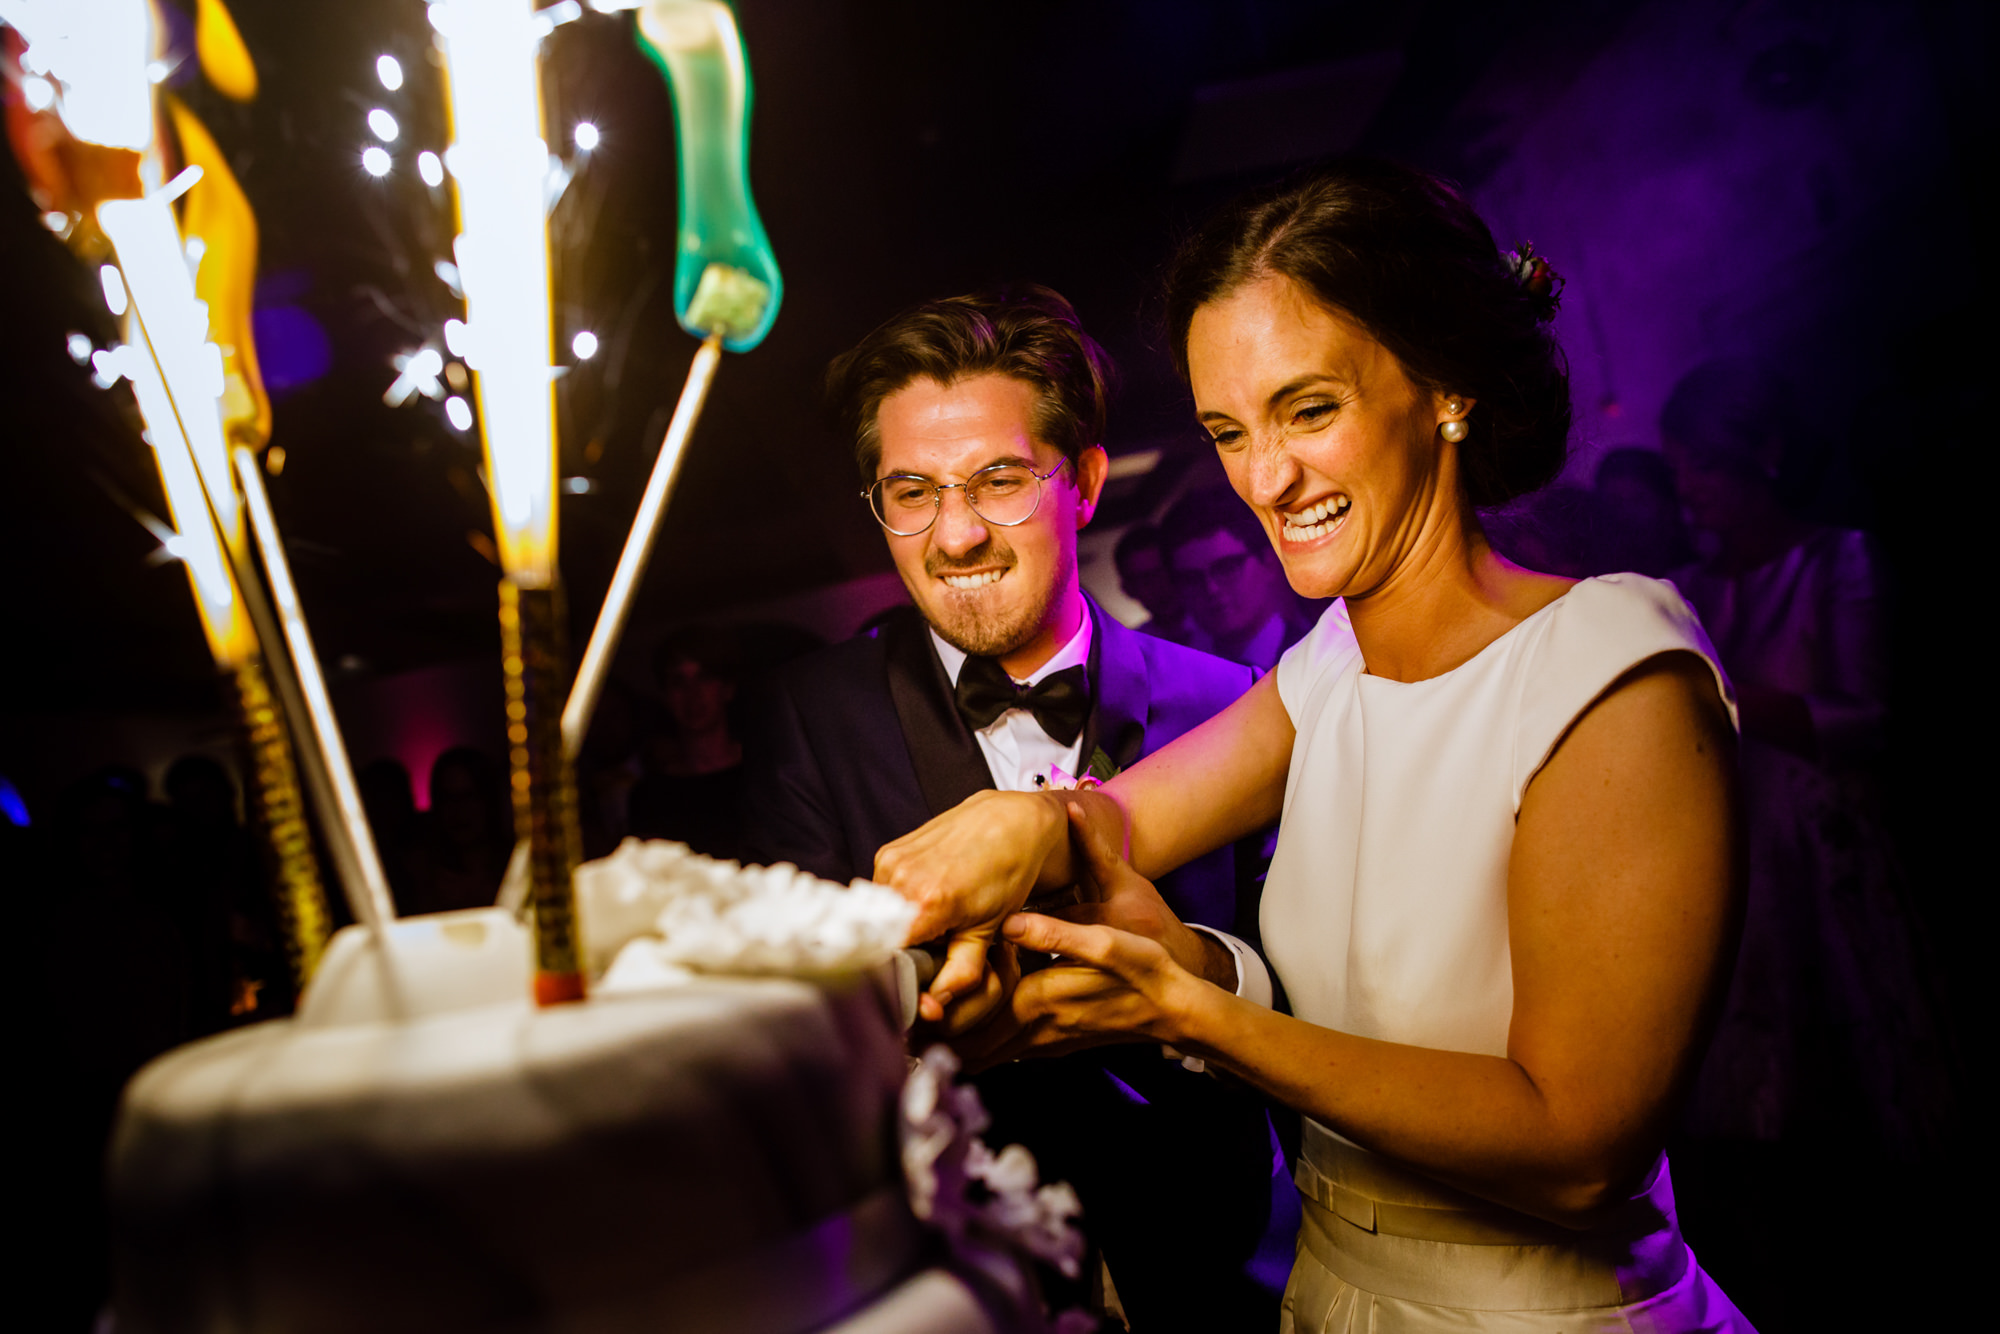 bride-and-groom-cut-cake-with-a-vengeance-worlds-best-wedding-photographers-philippe-swiggers